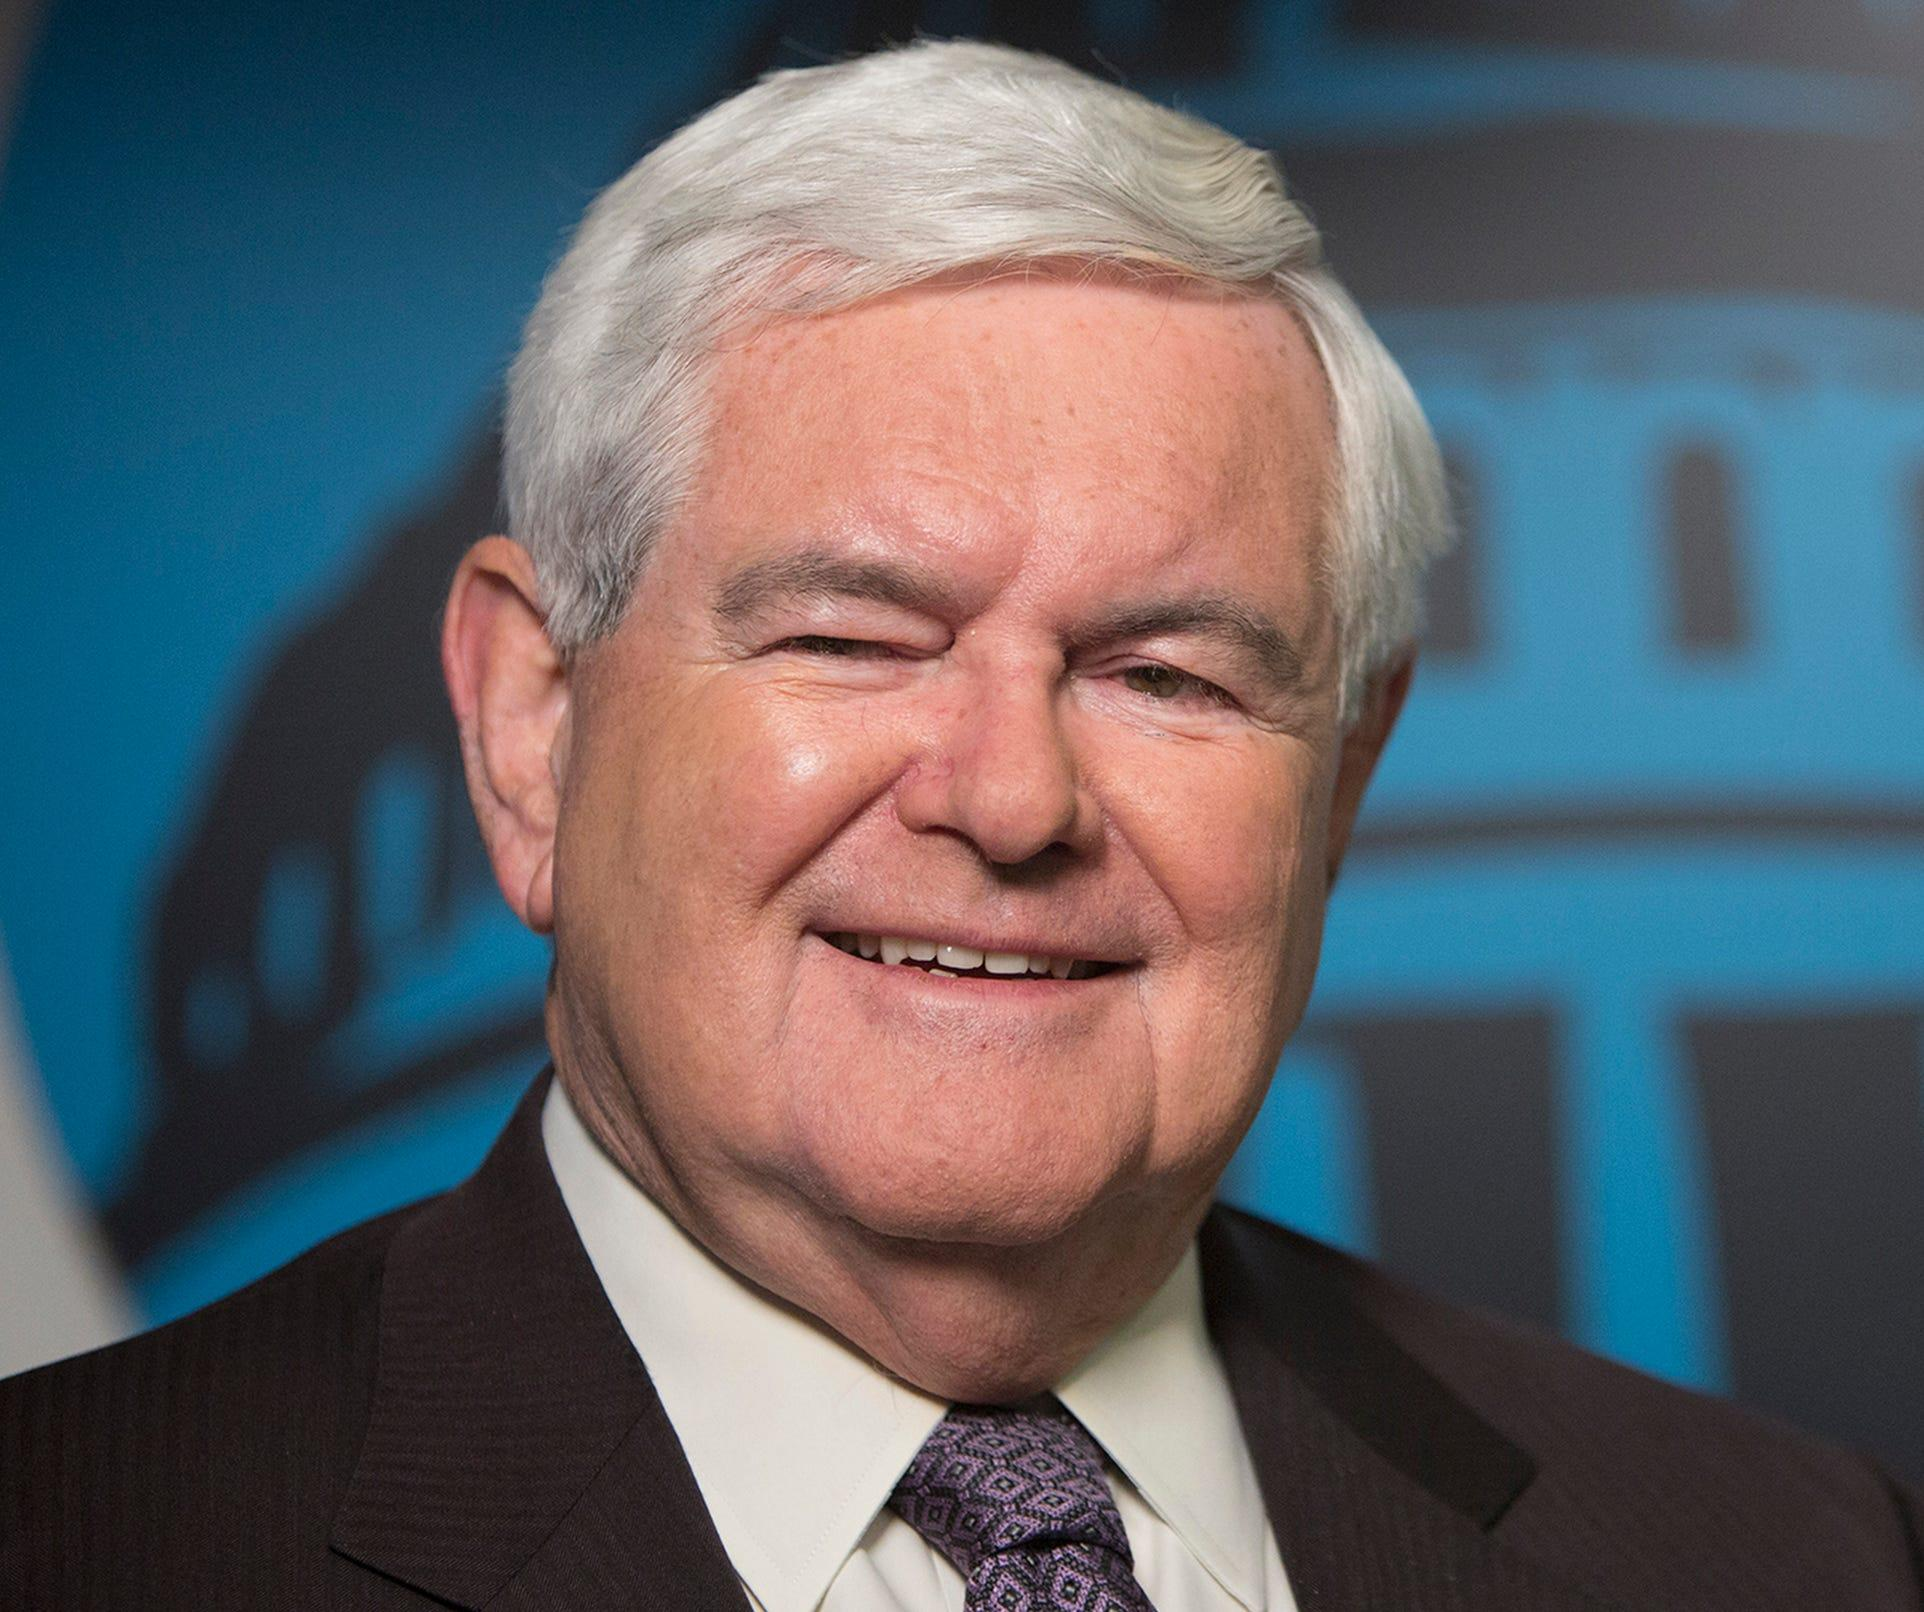 Newt Gingrich says slavery needs to be put 'in context,' calls 1619 project a 'lie'